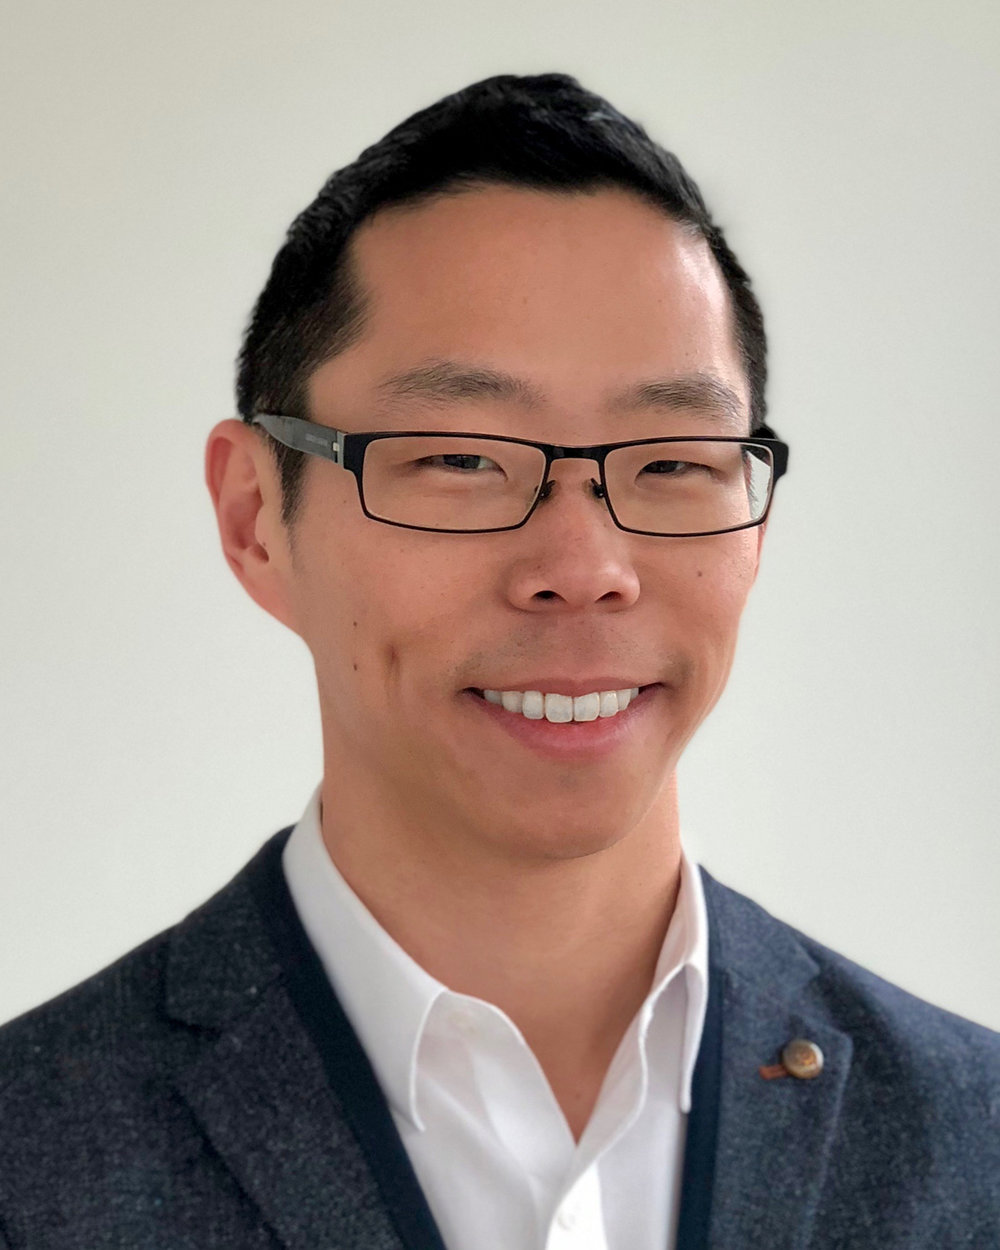 #22 - Discussing Test Characteristics of Point of Care Ultrasound for the Diagnosis of Retinal Detachment in the Emergency Department.Author: Dr. Daniel KimInterviewed by: Dr. Gabe Heiderich